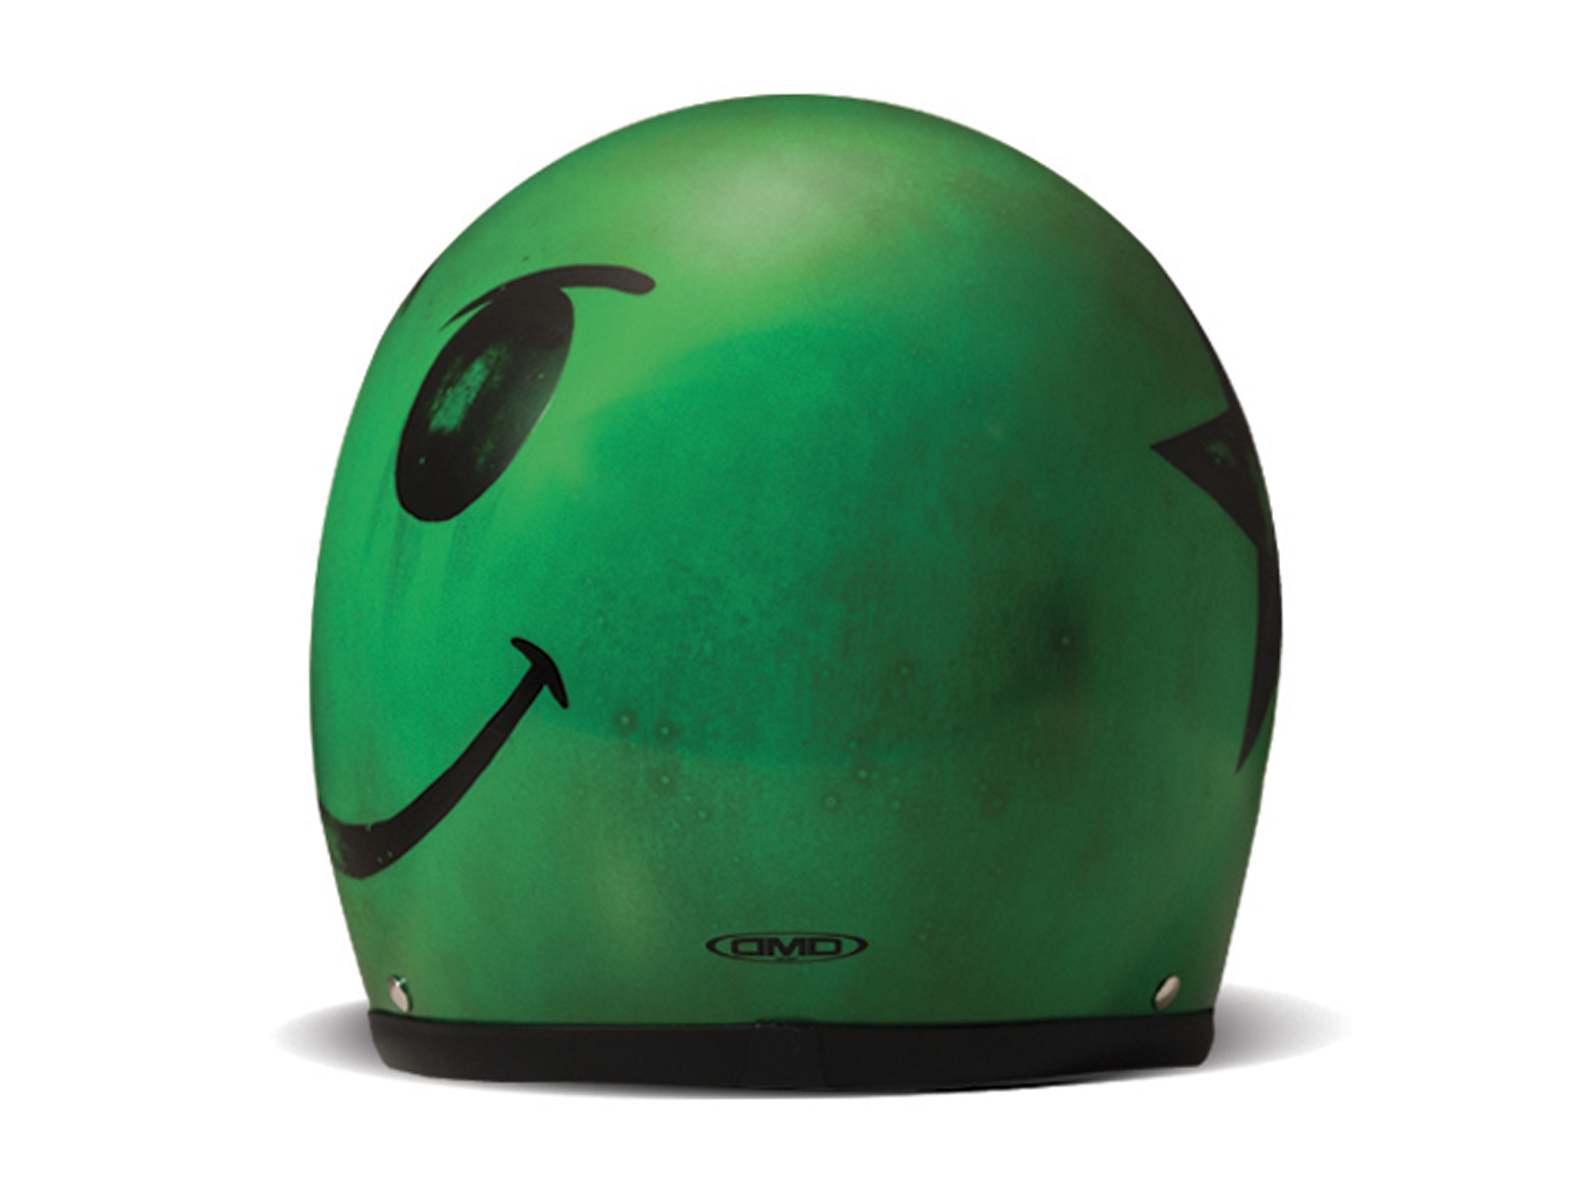 Casco jet Dmd VINTAGE Handmade SMILE Acid Green 3